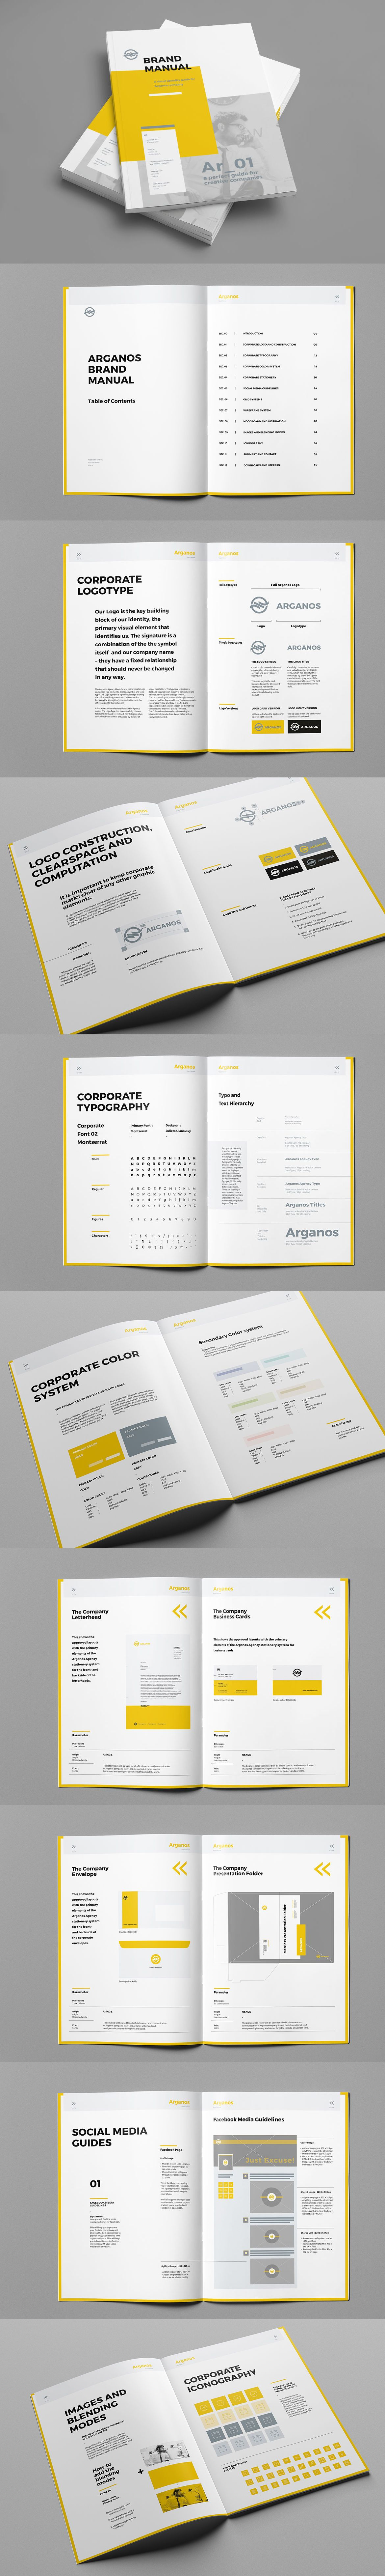 Brand Manual Template InDesign INDD - 48 Pages, A4 | GSM | Pinterest ...